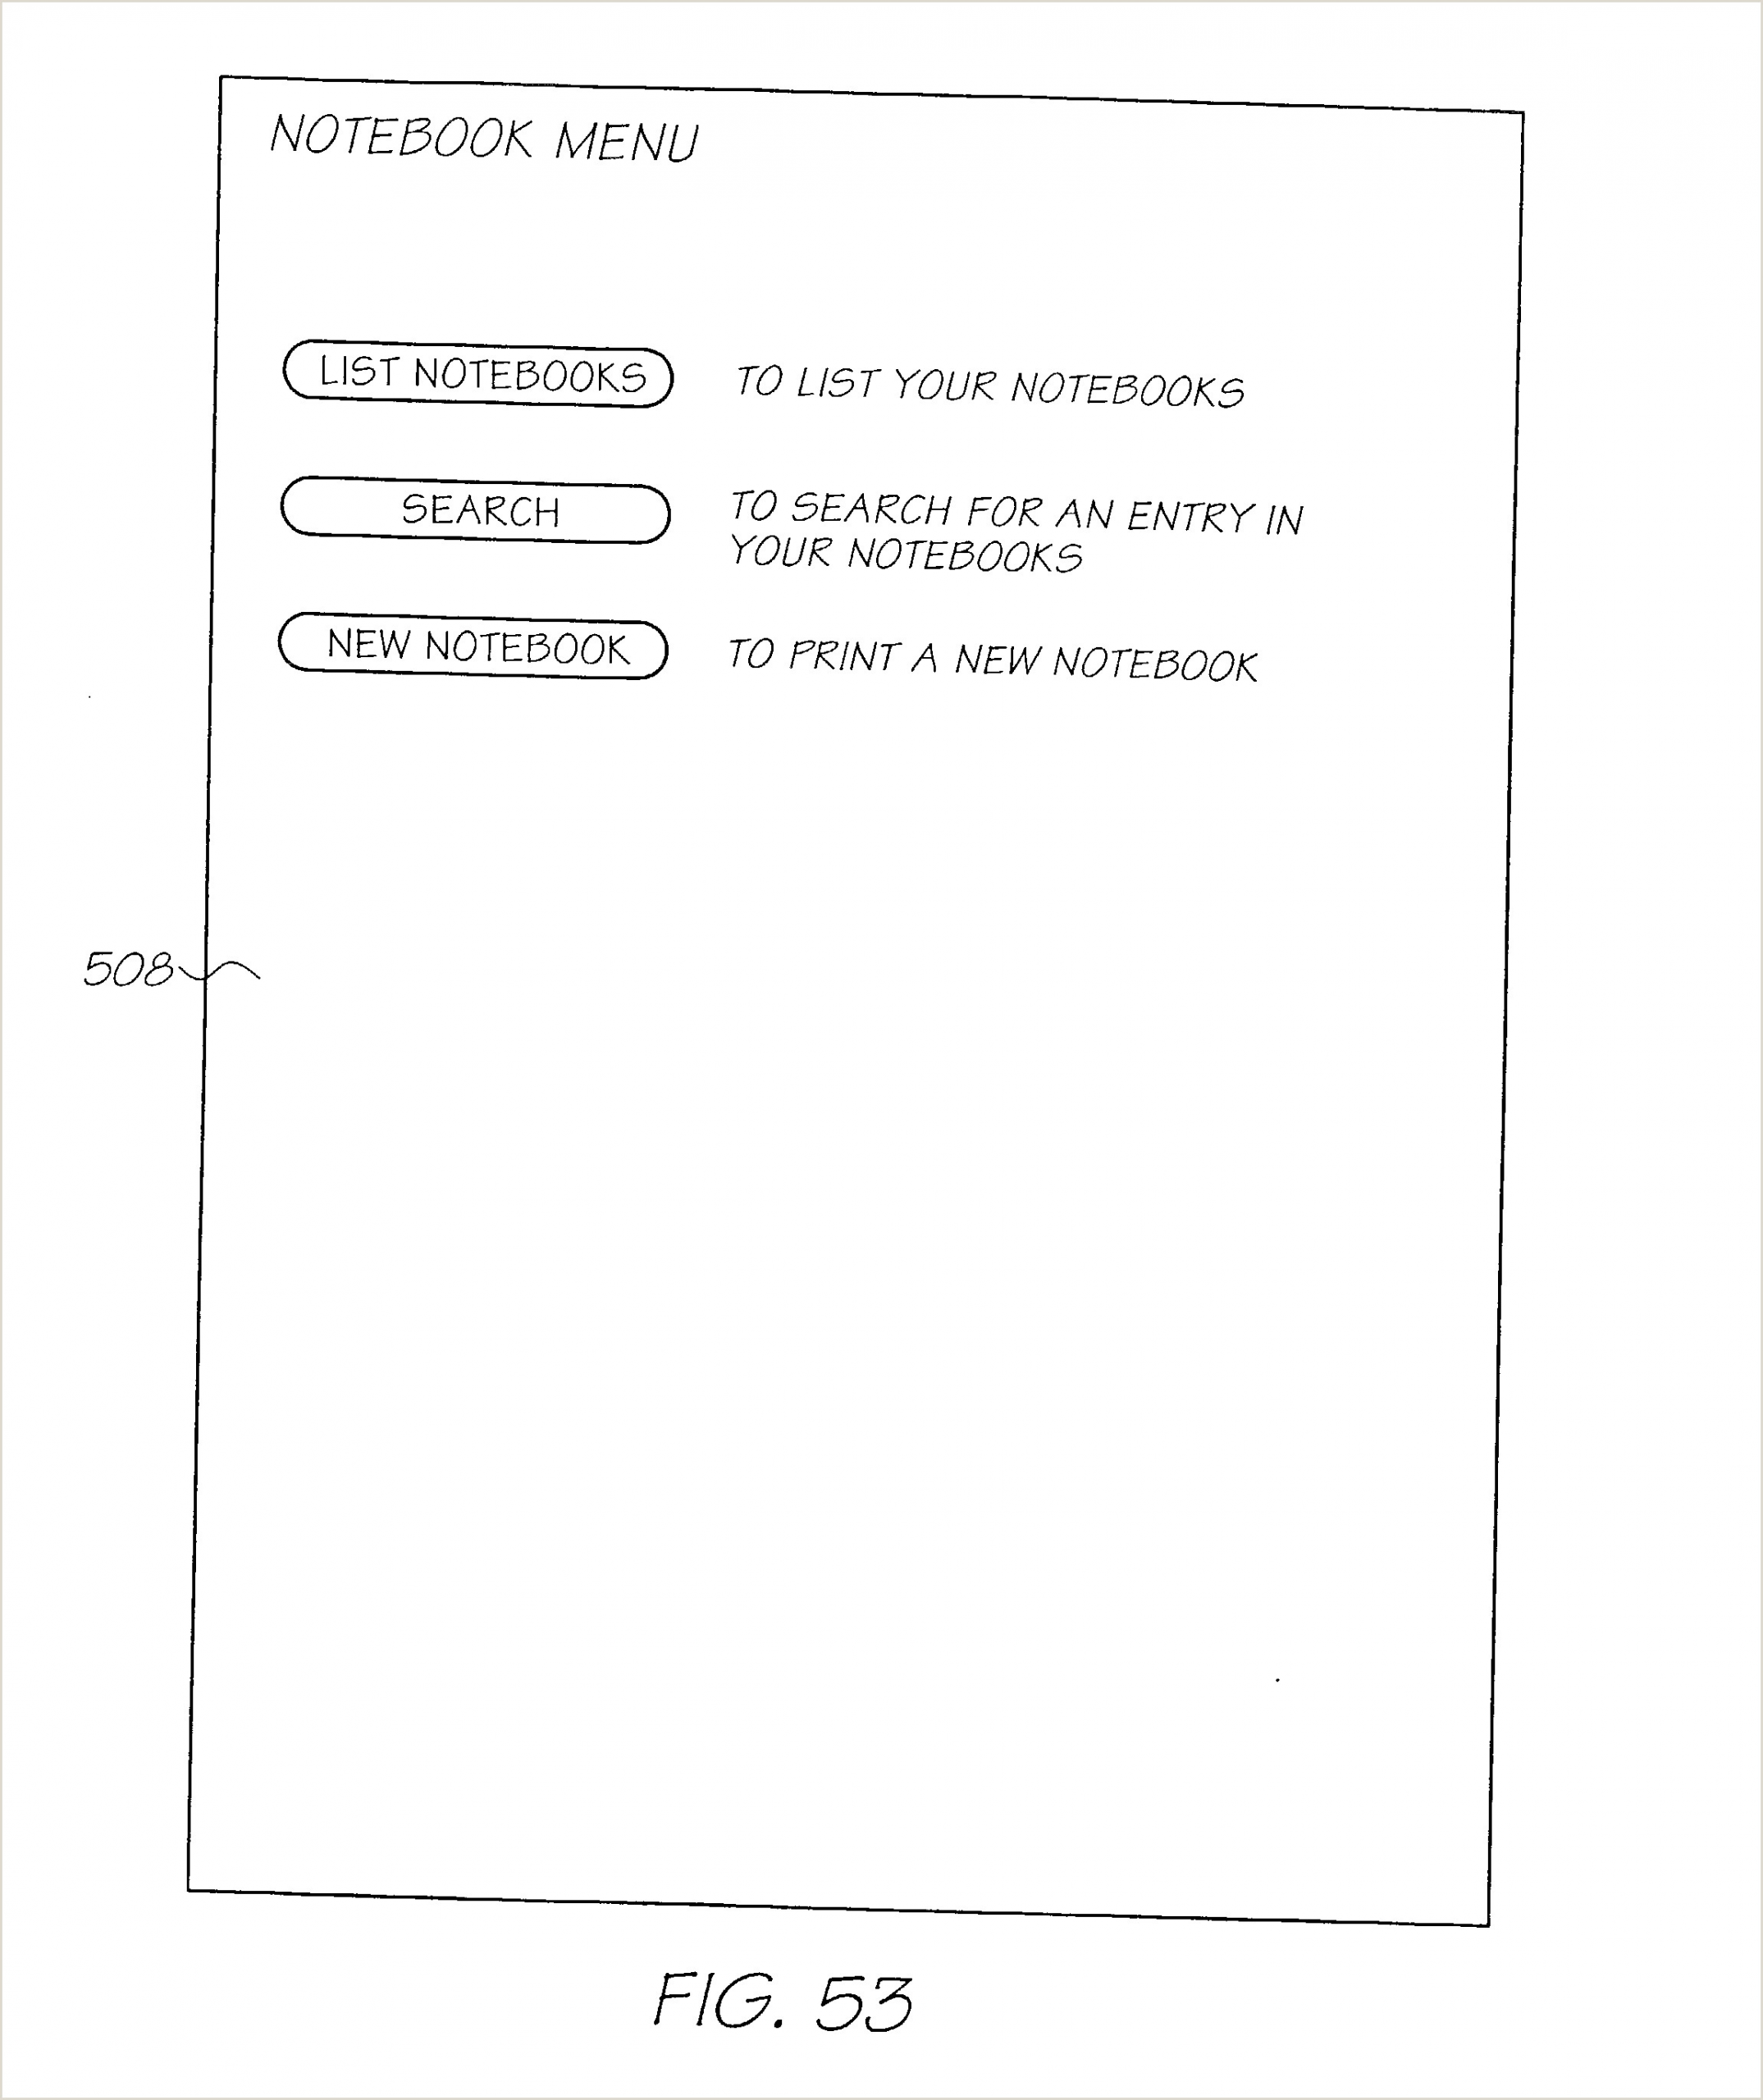 Retractable Banner Designs Us A1 Method And System For Note Taking Using